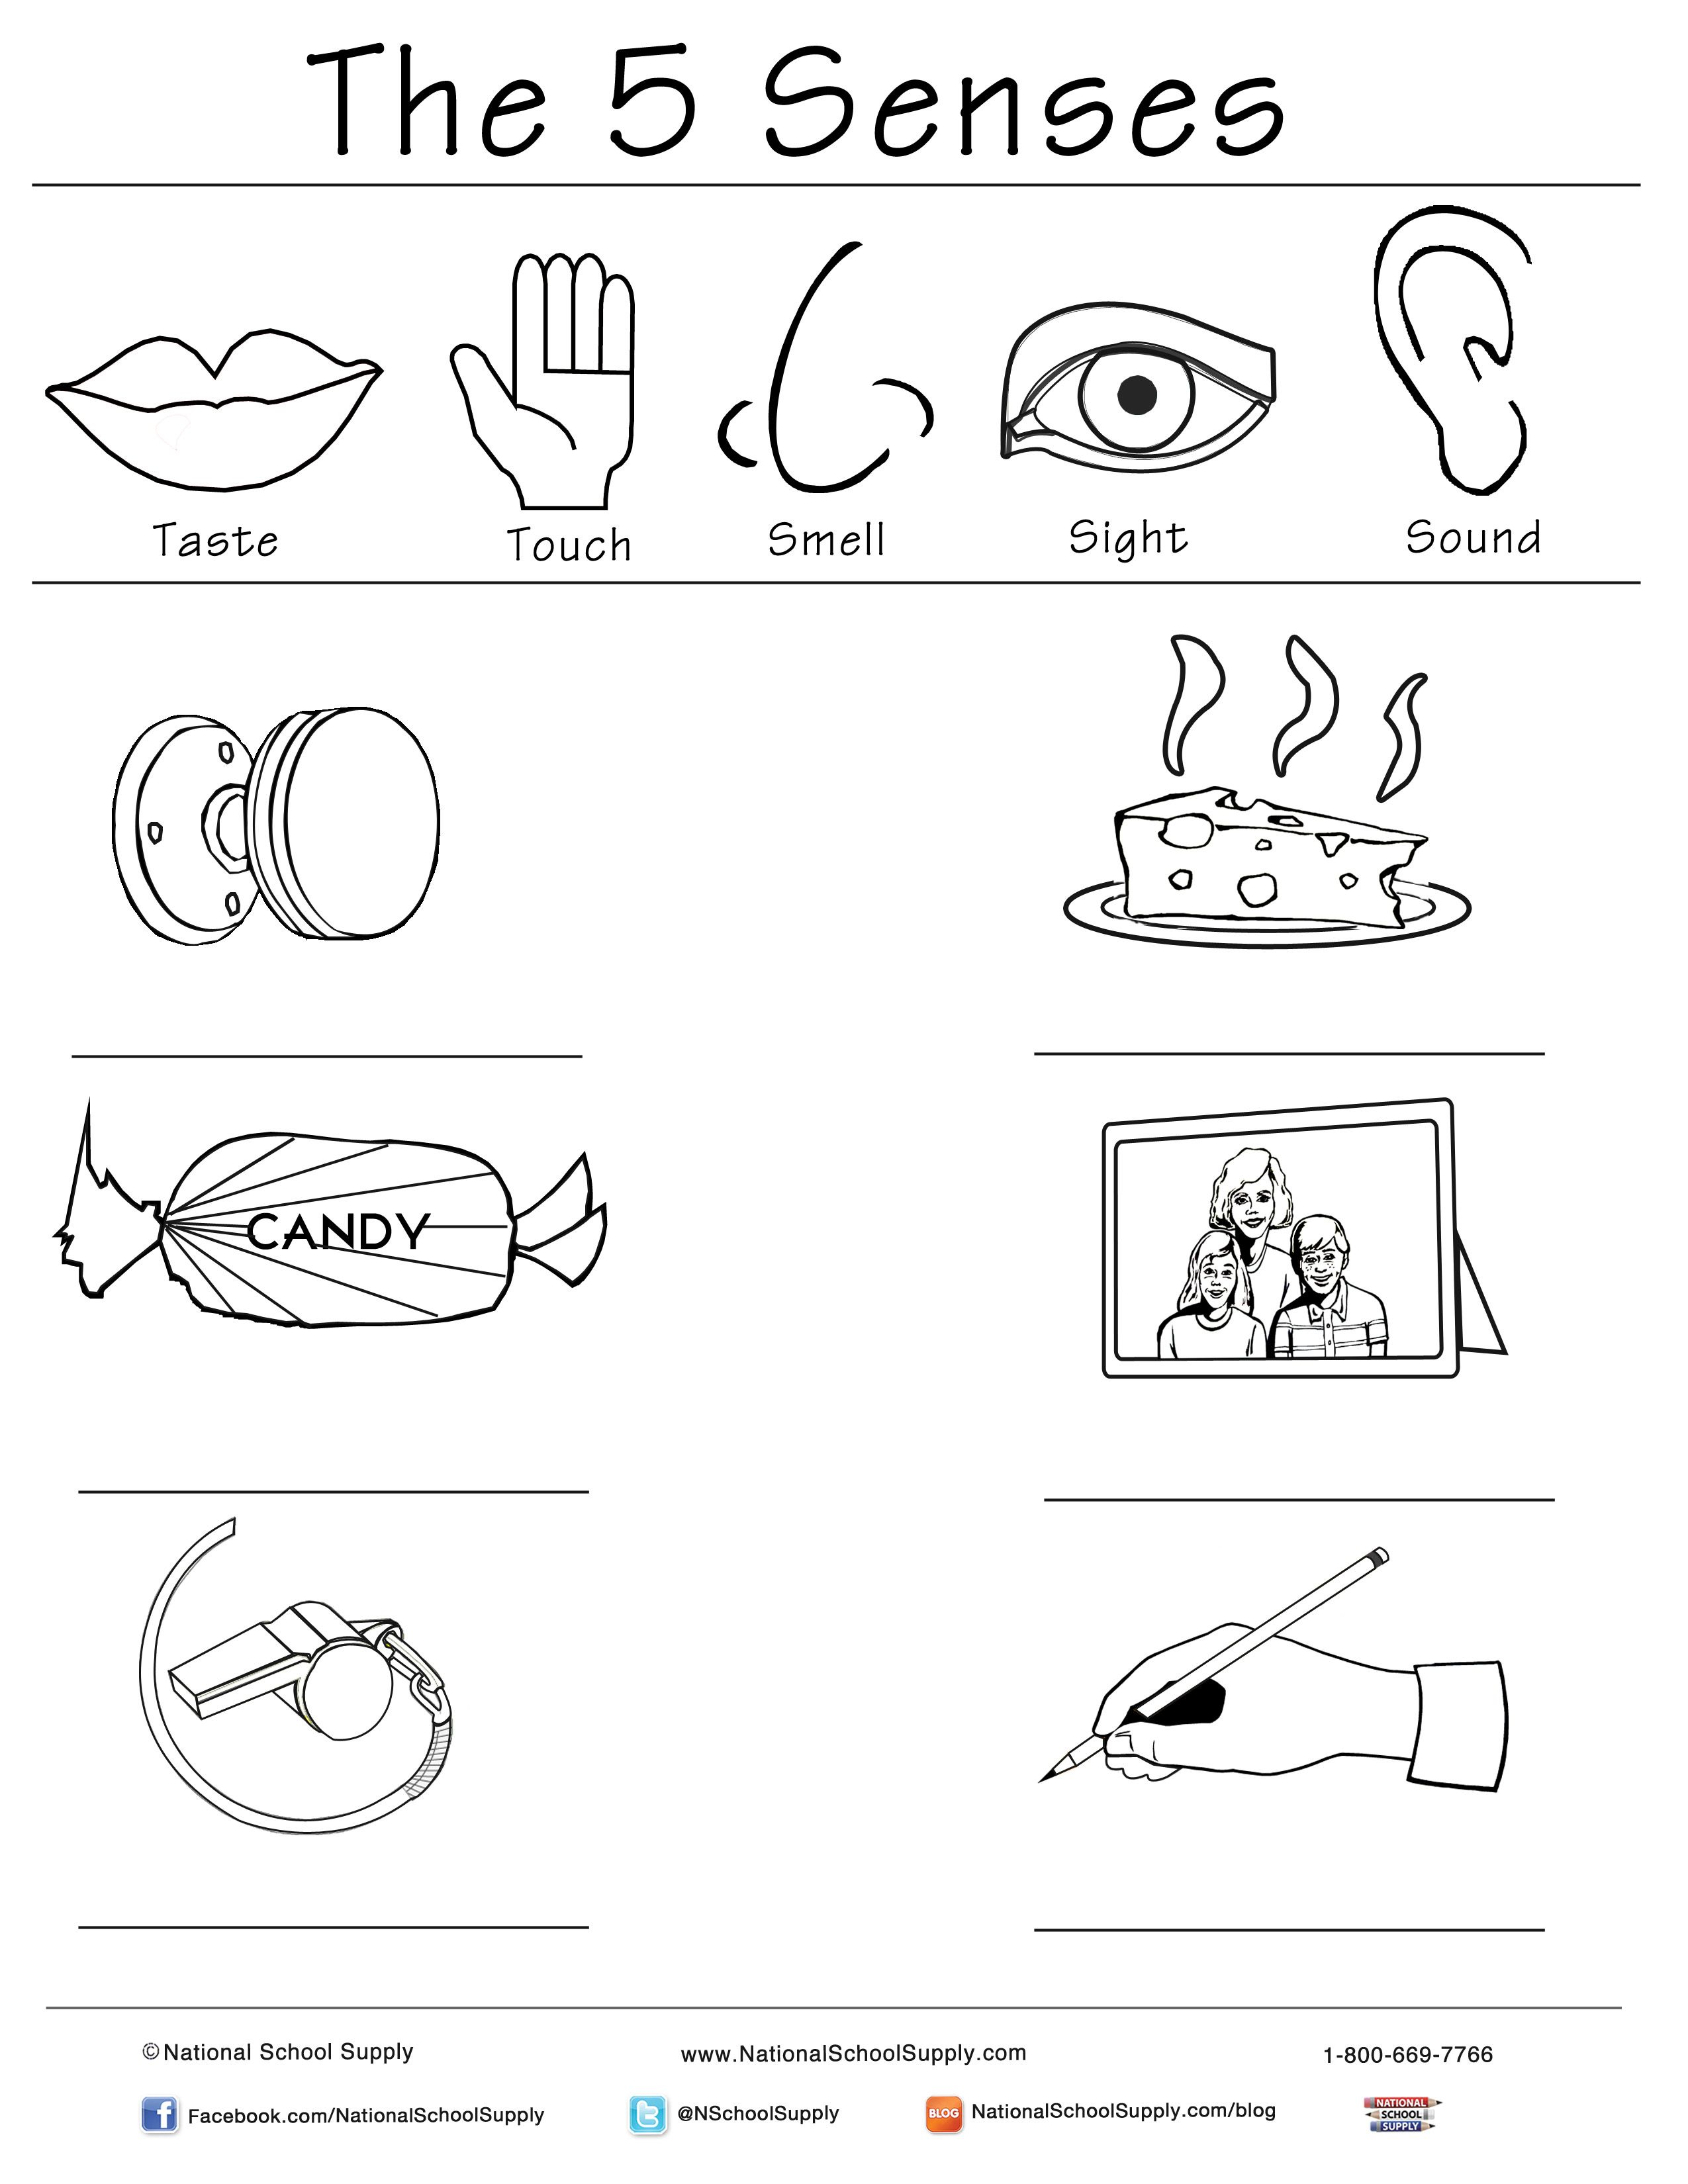 New 5 Senses Printable Is Great For Classrooms Of All Ages